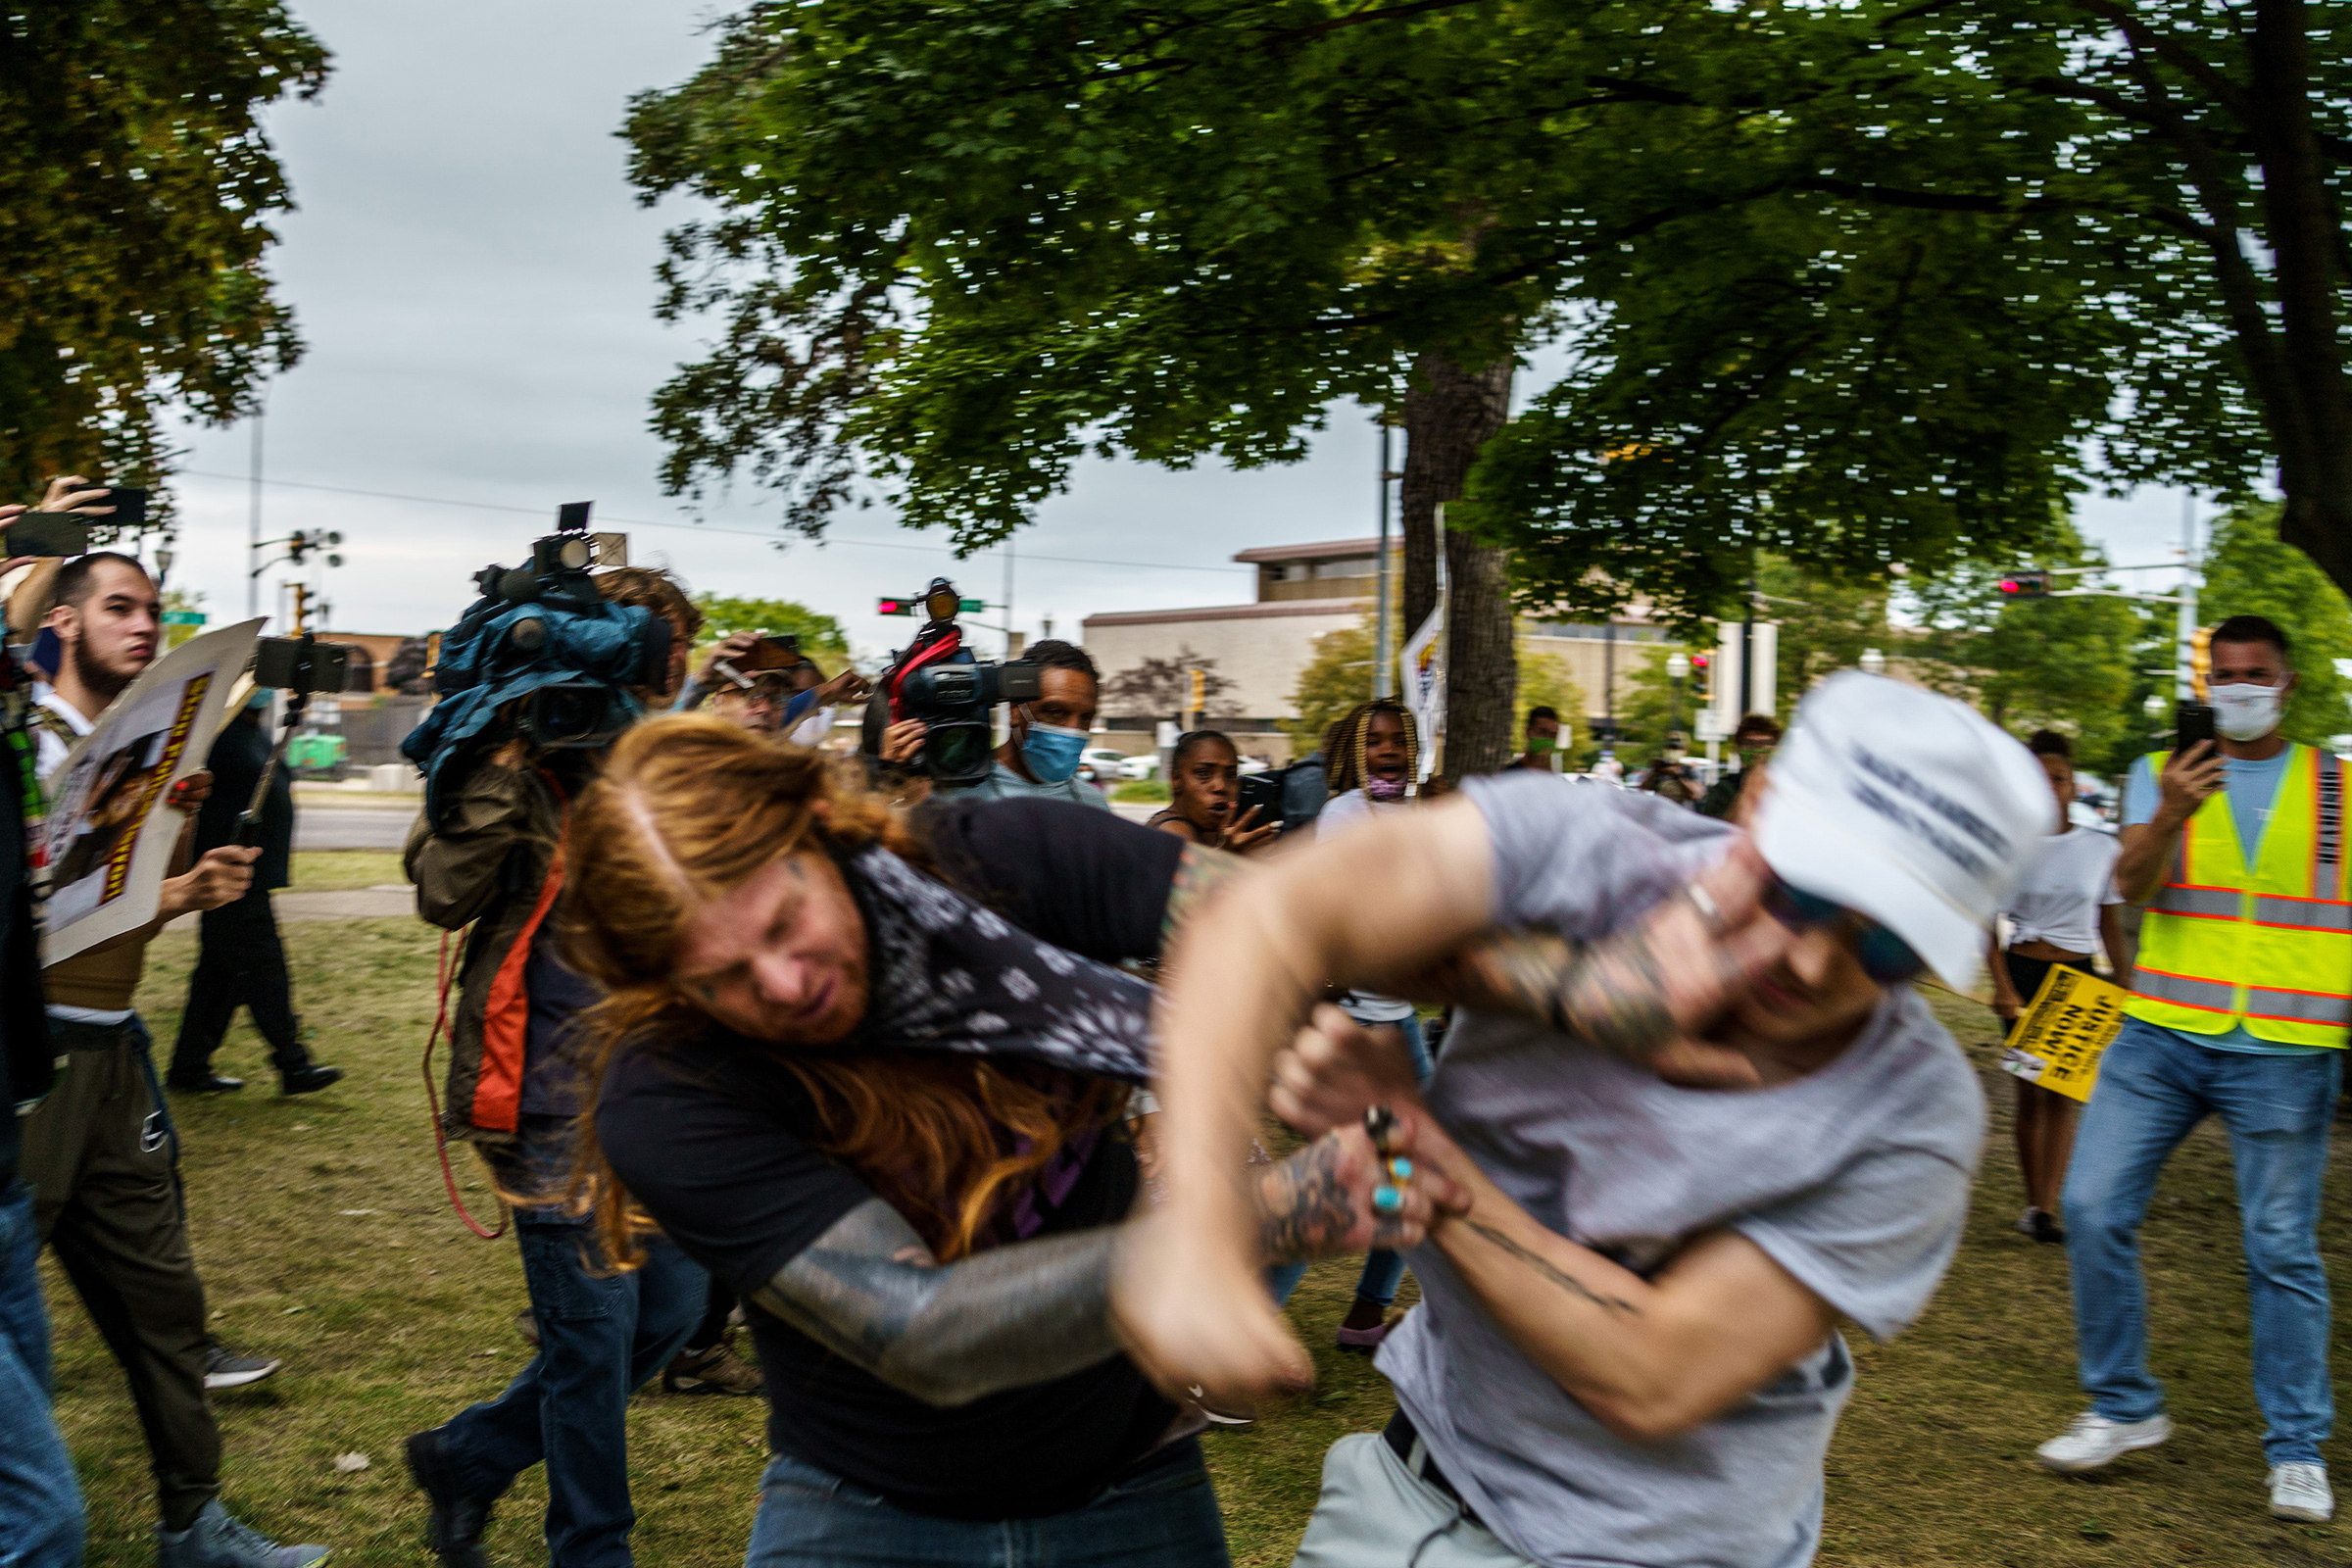 A protester scuffles with a Trump supporter (R) in Kenosha, Wis. on Sept. 1 amid ongoing demonstrations after the shooting by police of Jacob Blake